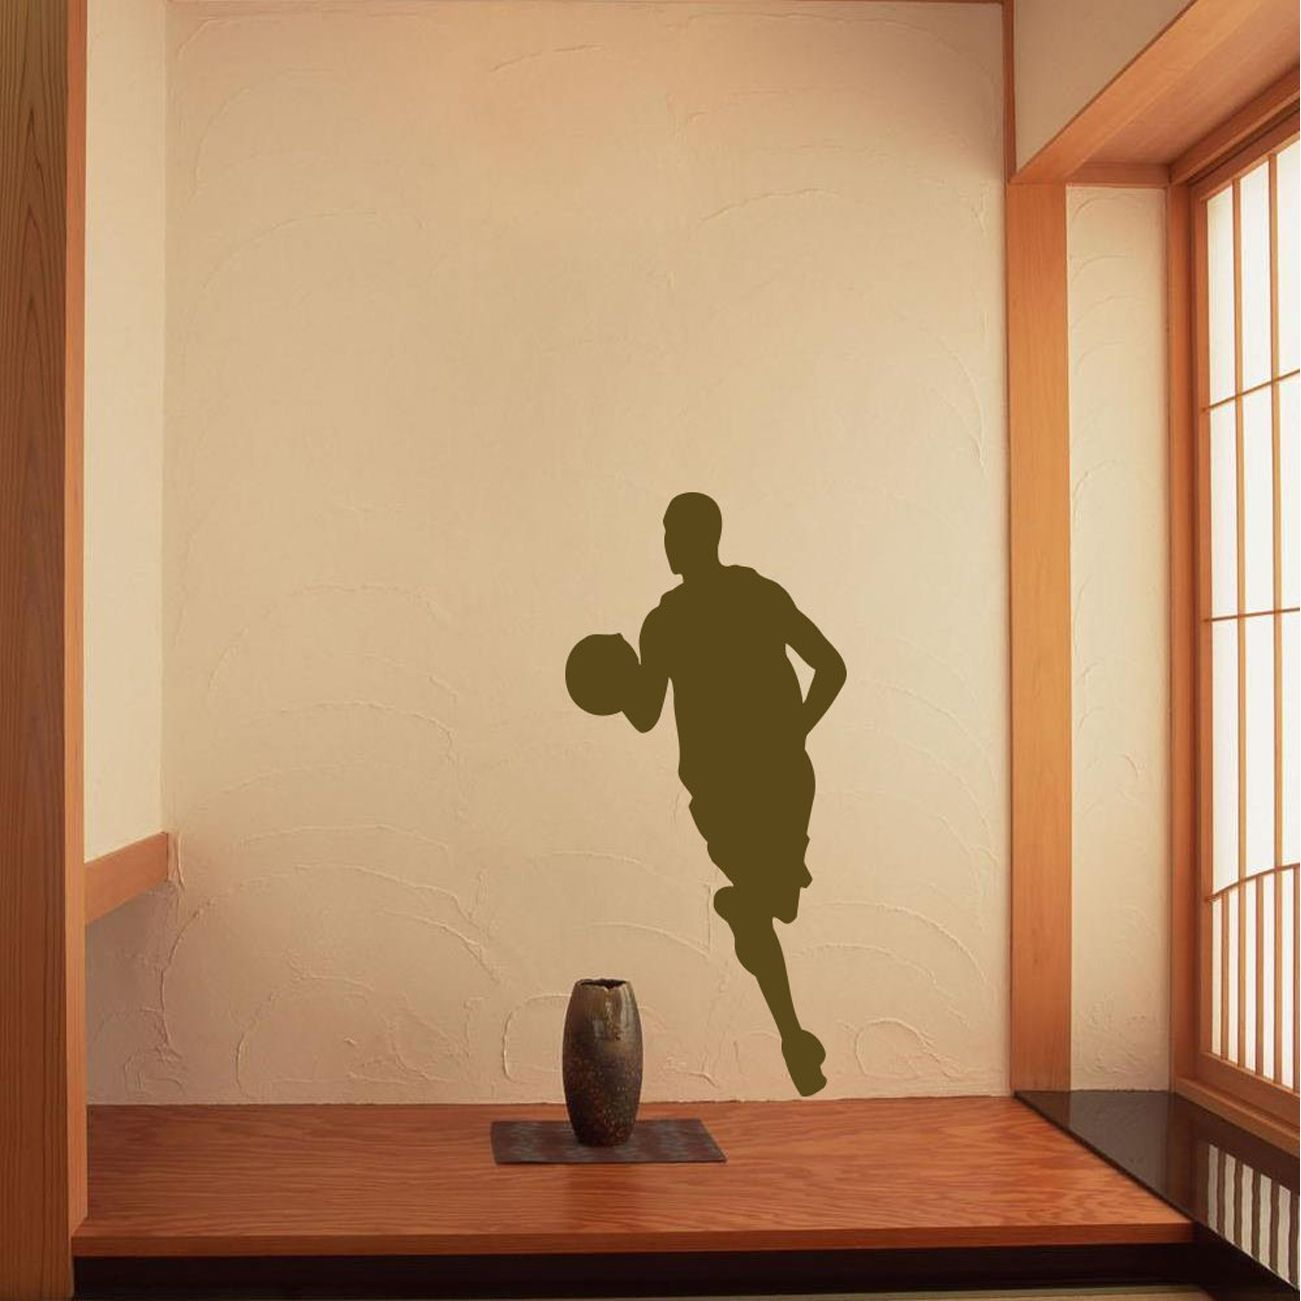 Dribbling Basketball Player Vinyl Wall Decal | Products | Pinterest ...